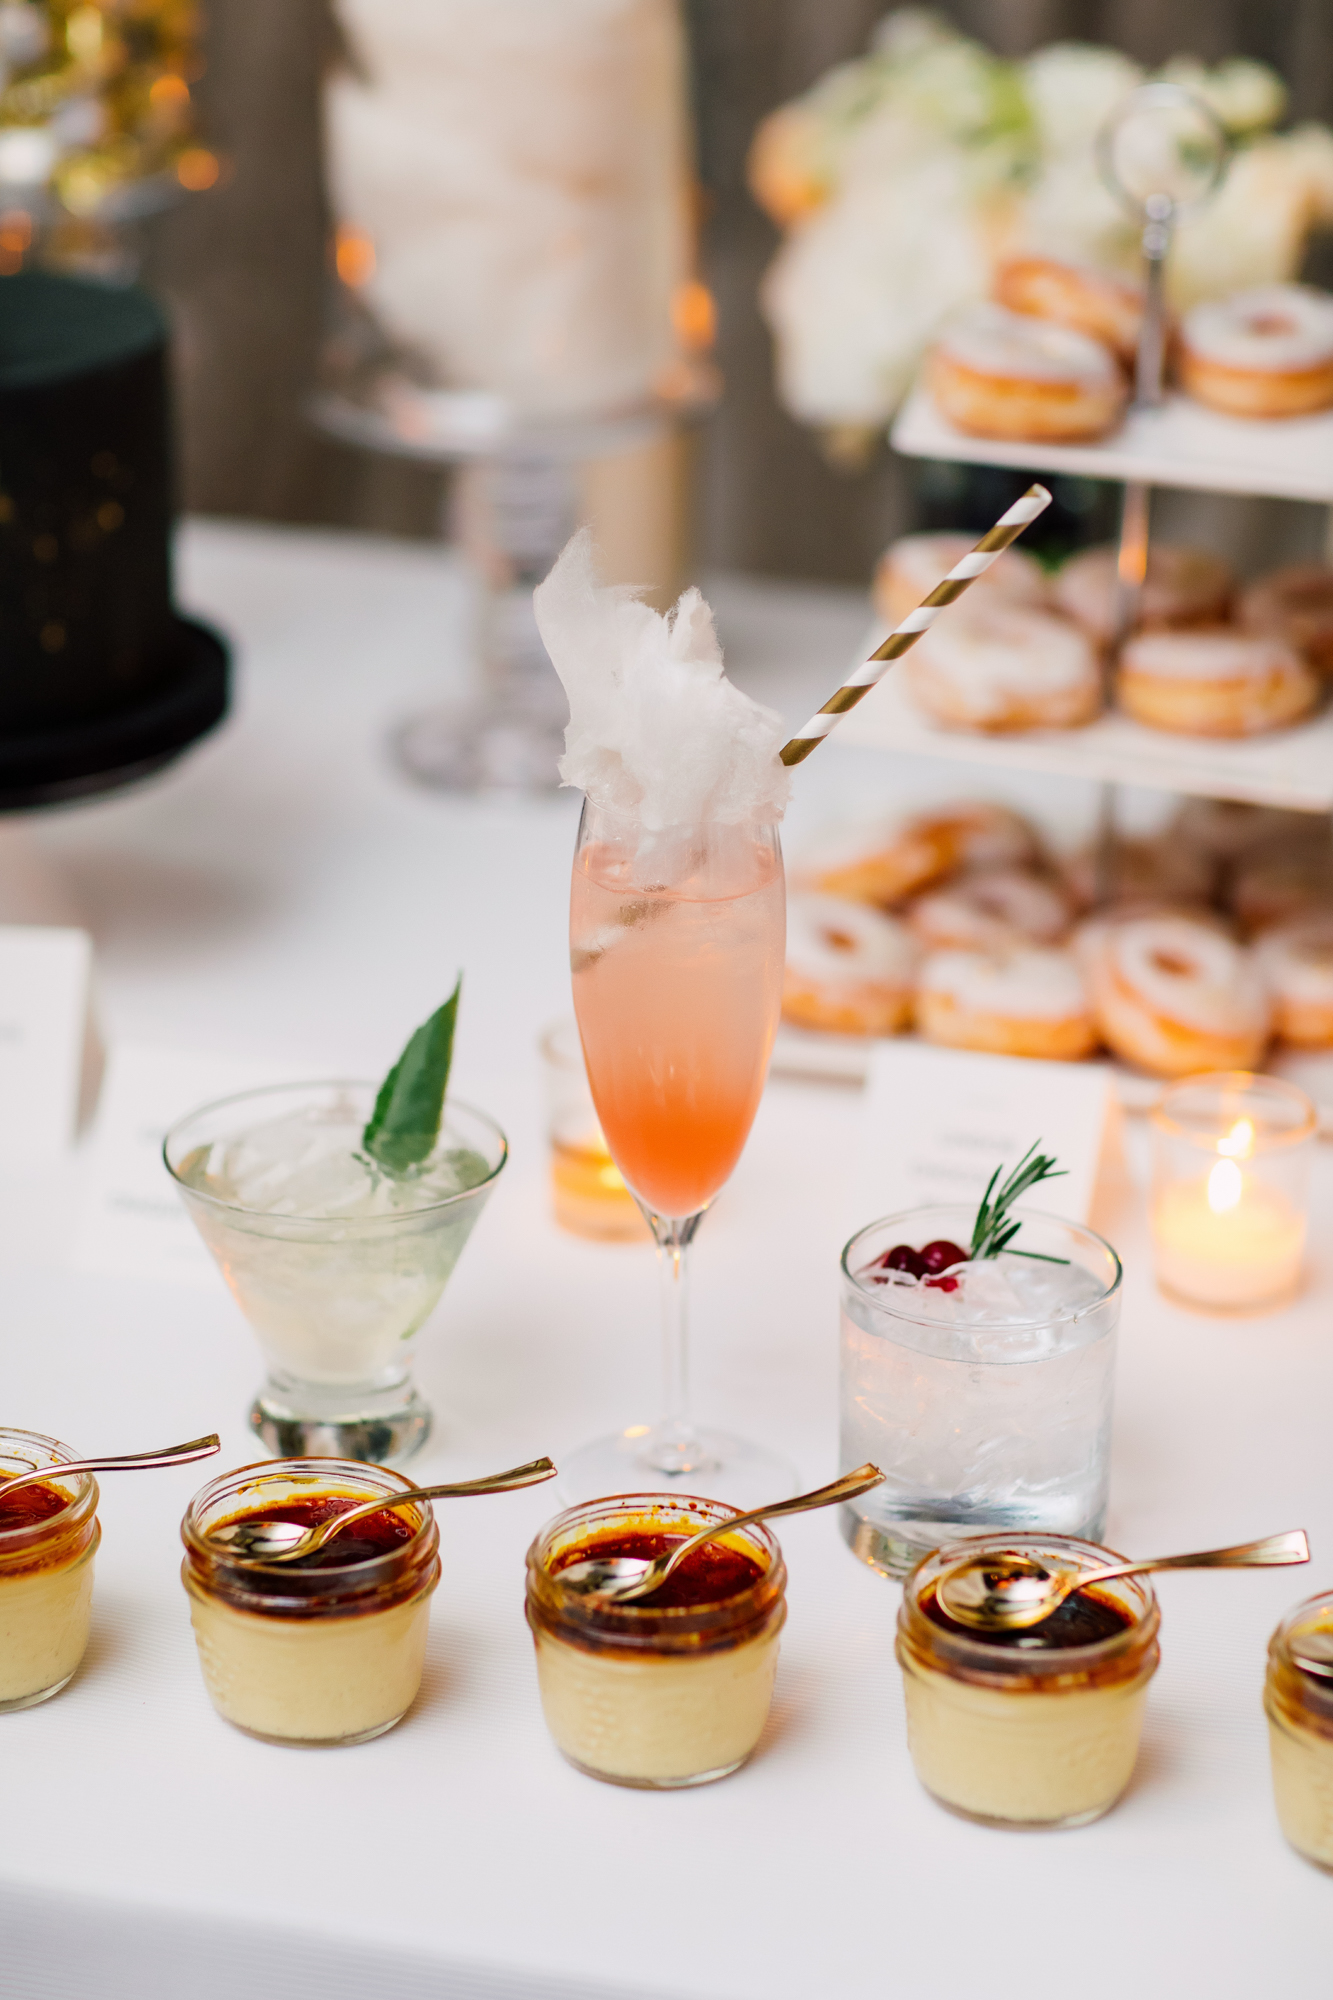 truffle cake and pastry wedding dessert